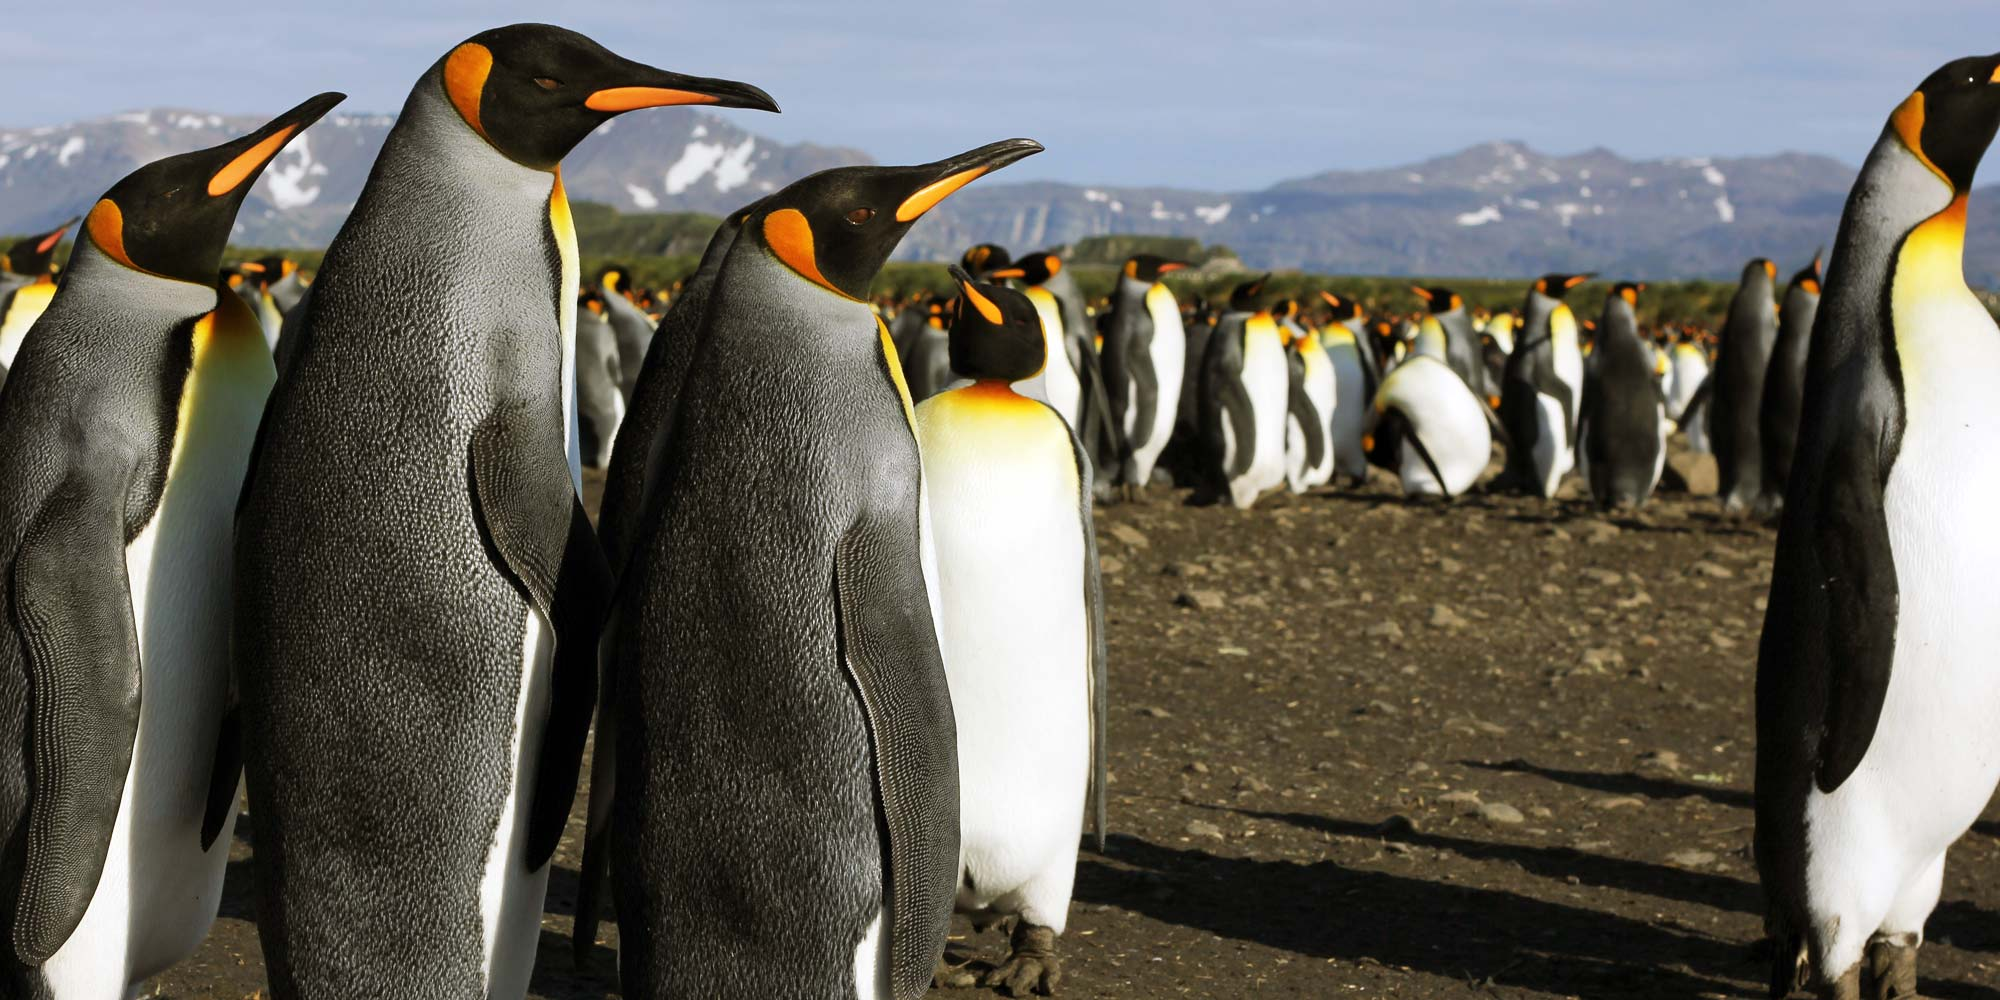 King Penguins on Salisbury Plain by wildlife cameraman Simon Vacher